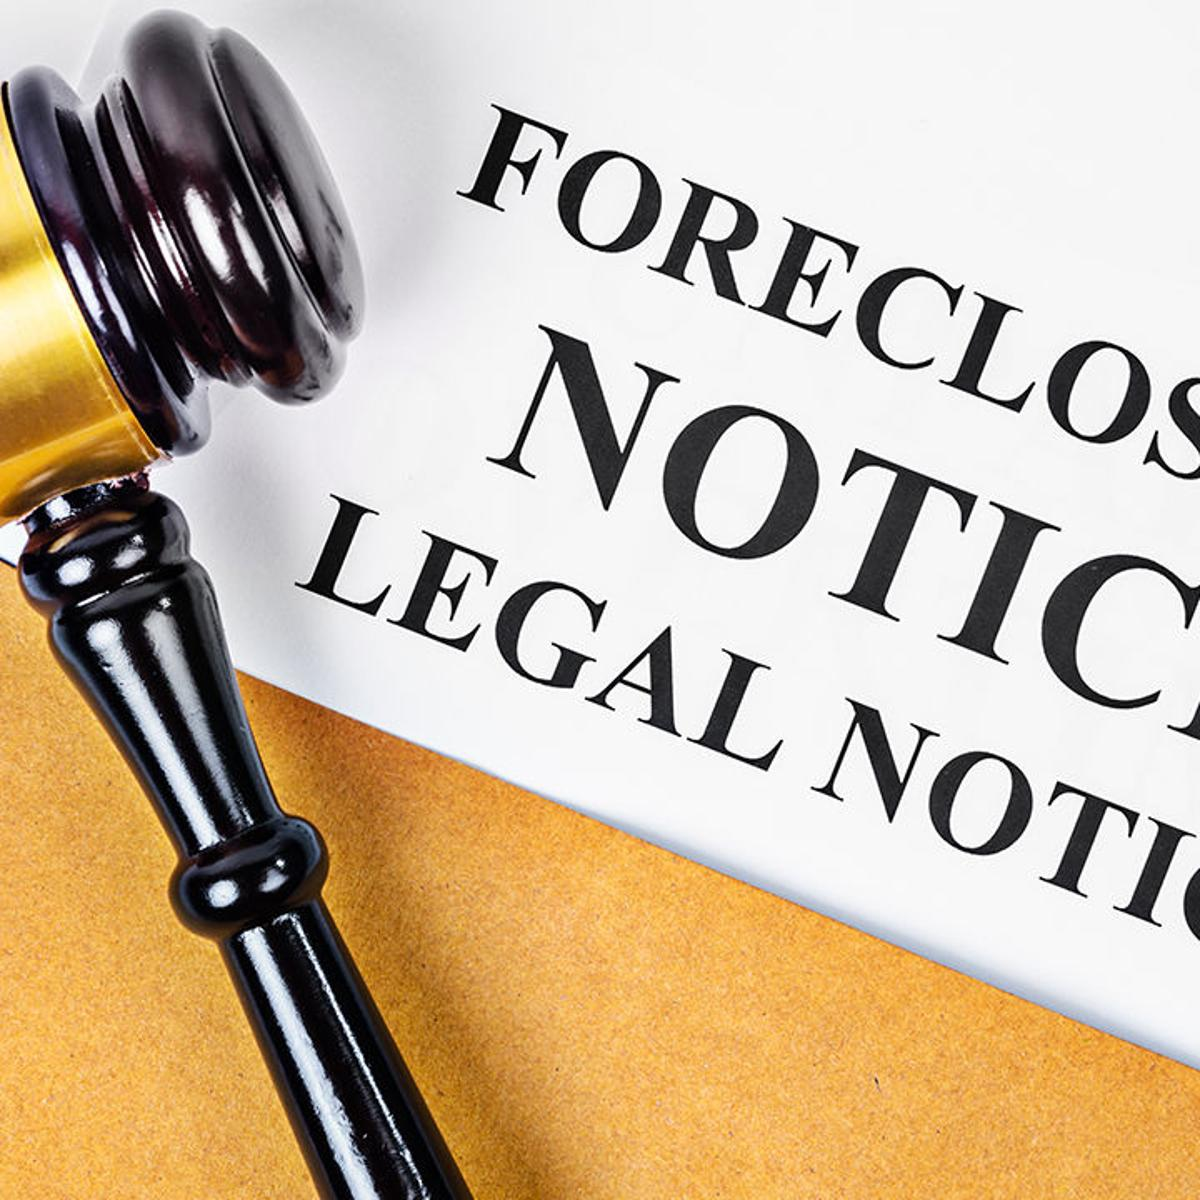 The Best Strategy To Use For Law On Filing For Bankruptcy To Avoid Foreclosure - Buyers of Charlotte.com - Sell your House in Days